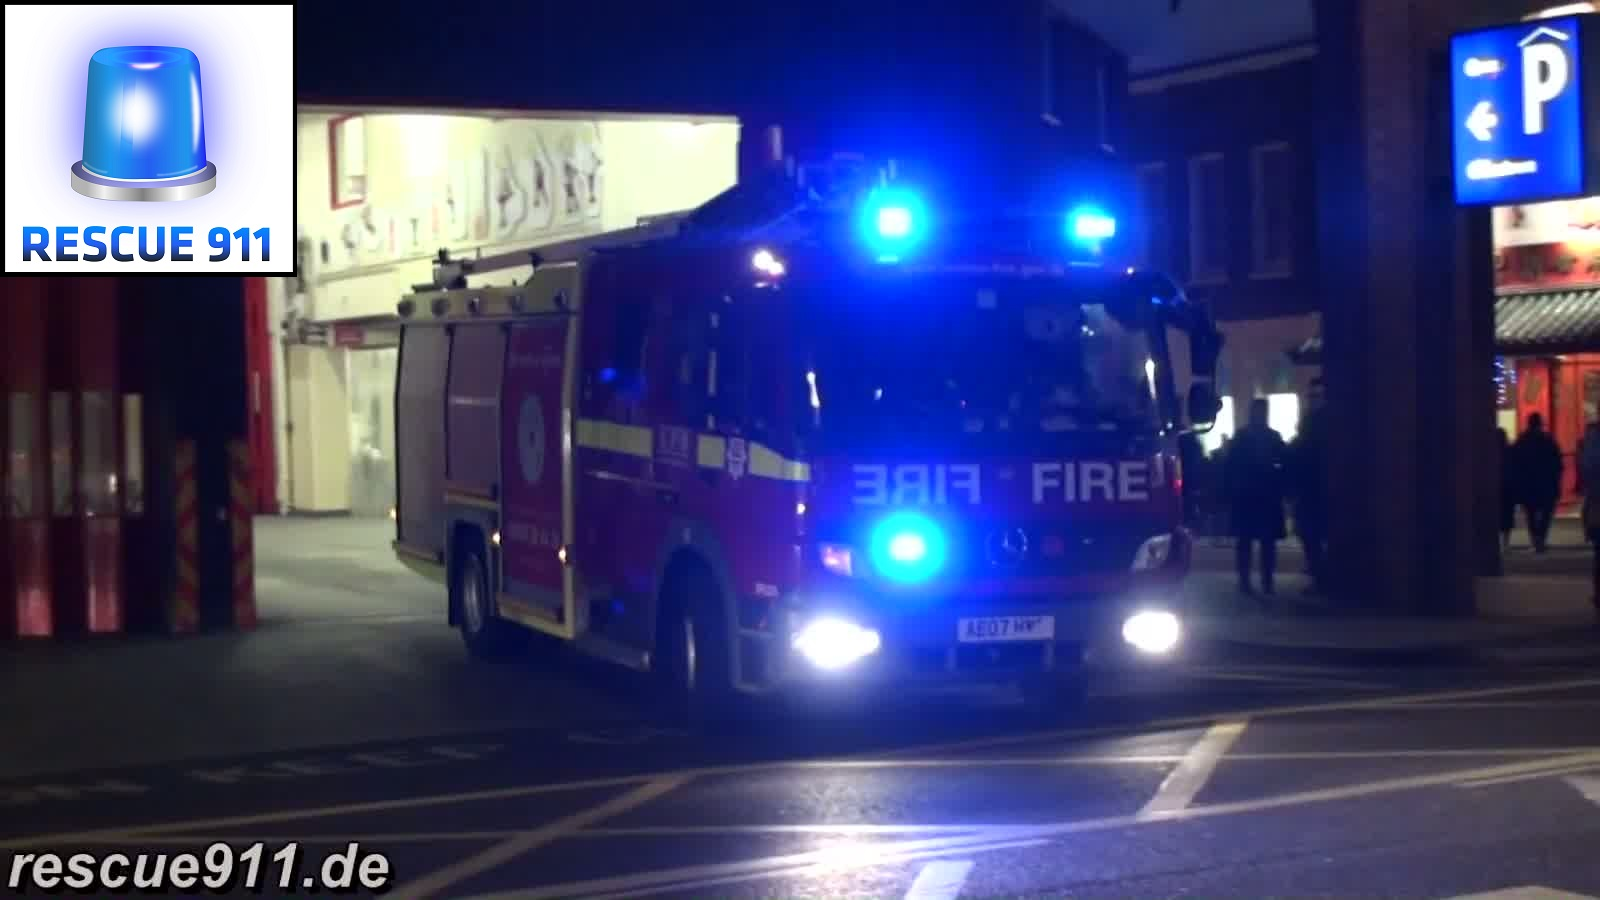 Pump Ladder LFB Soho (stream)